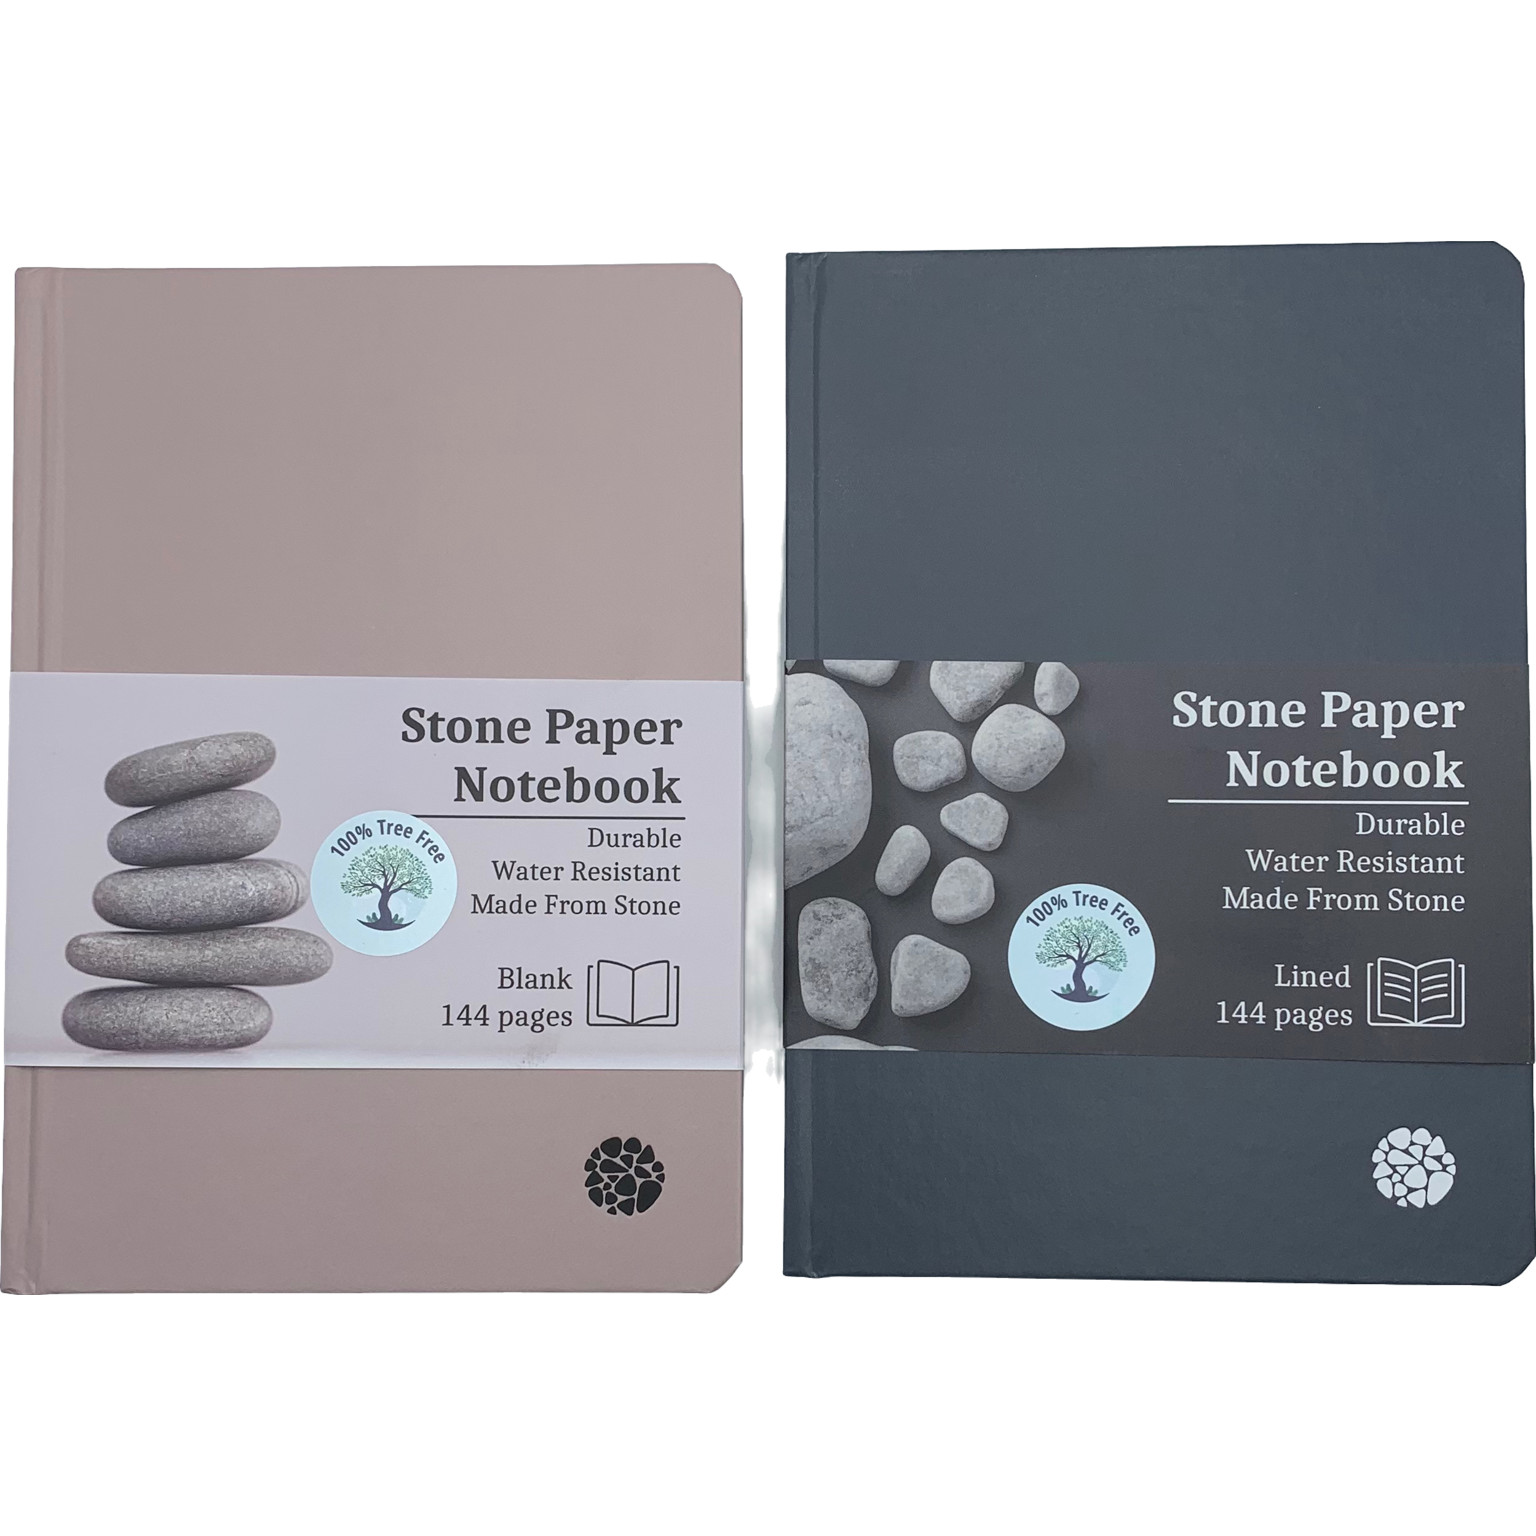 100% Tree Free Notebooks - paper made from stone, not trees